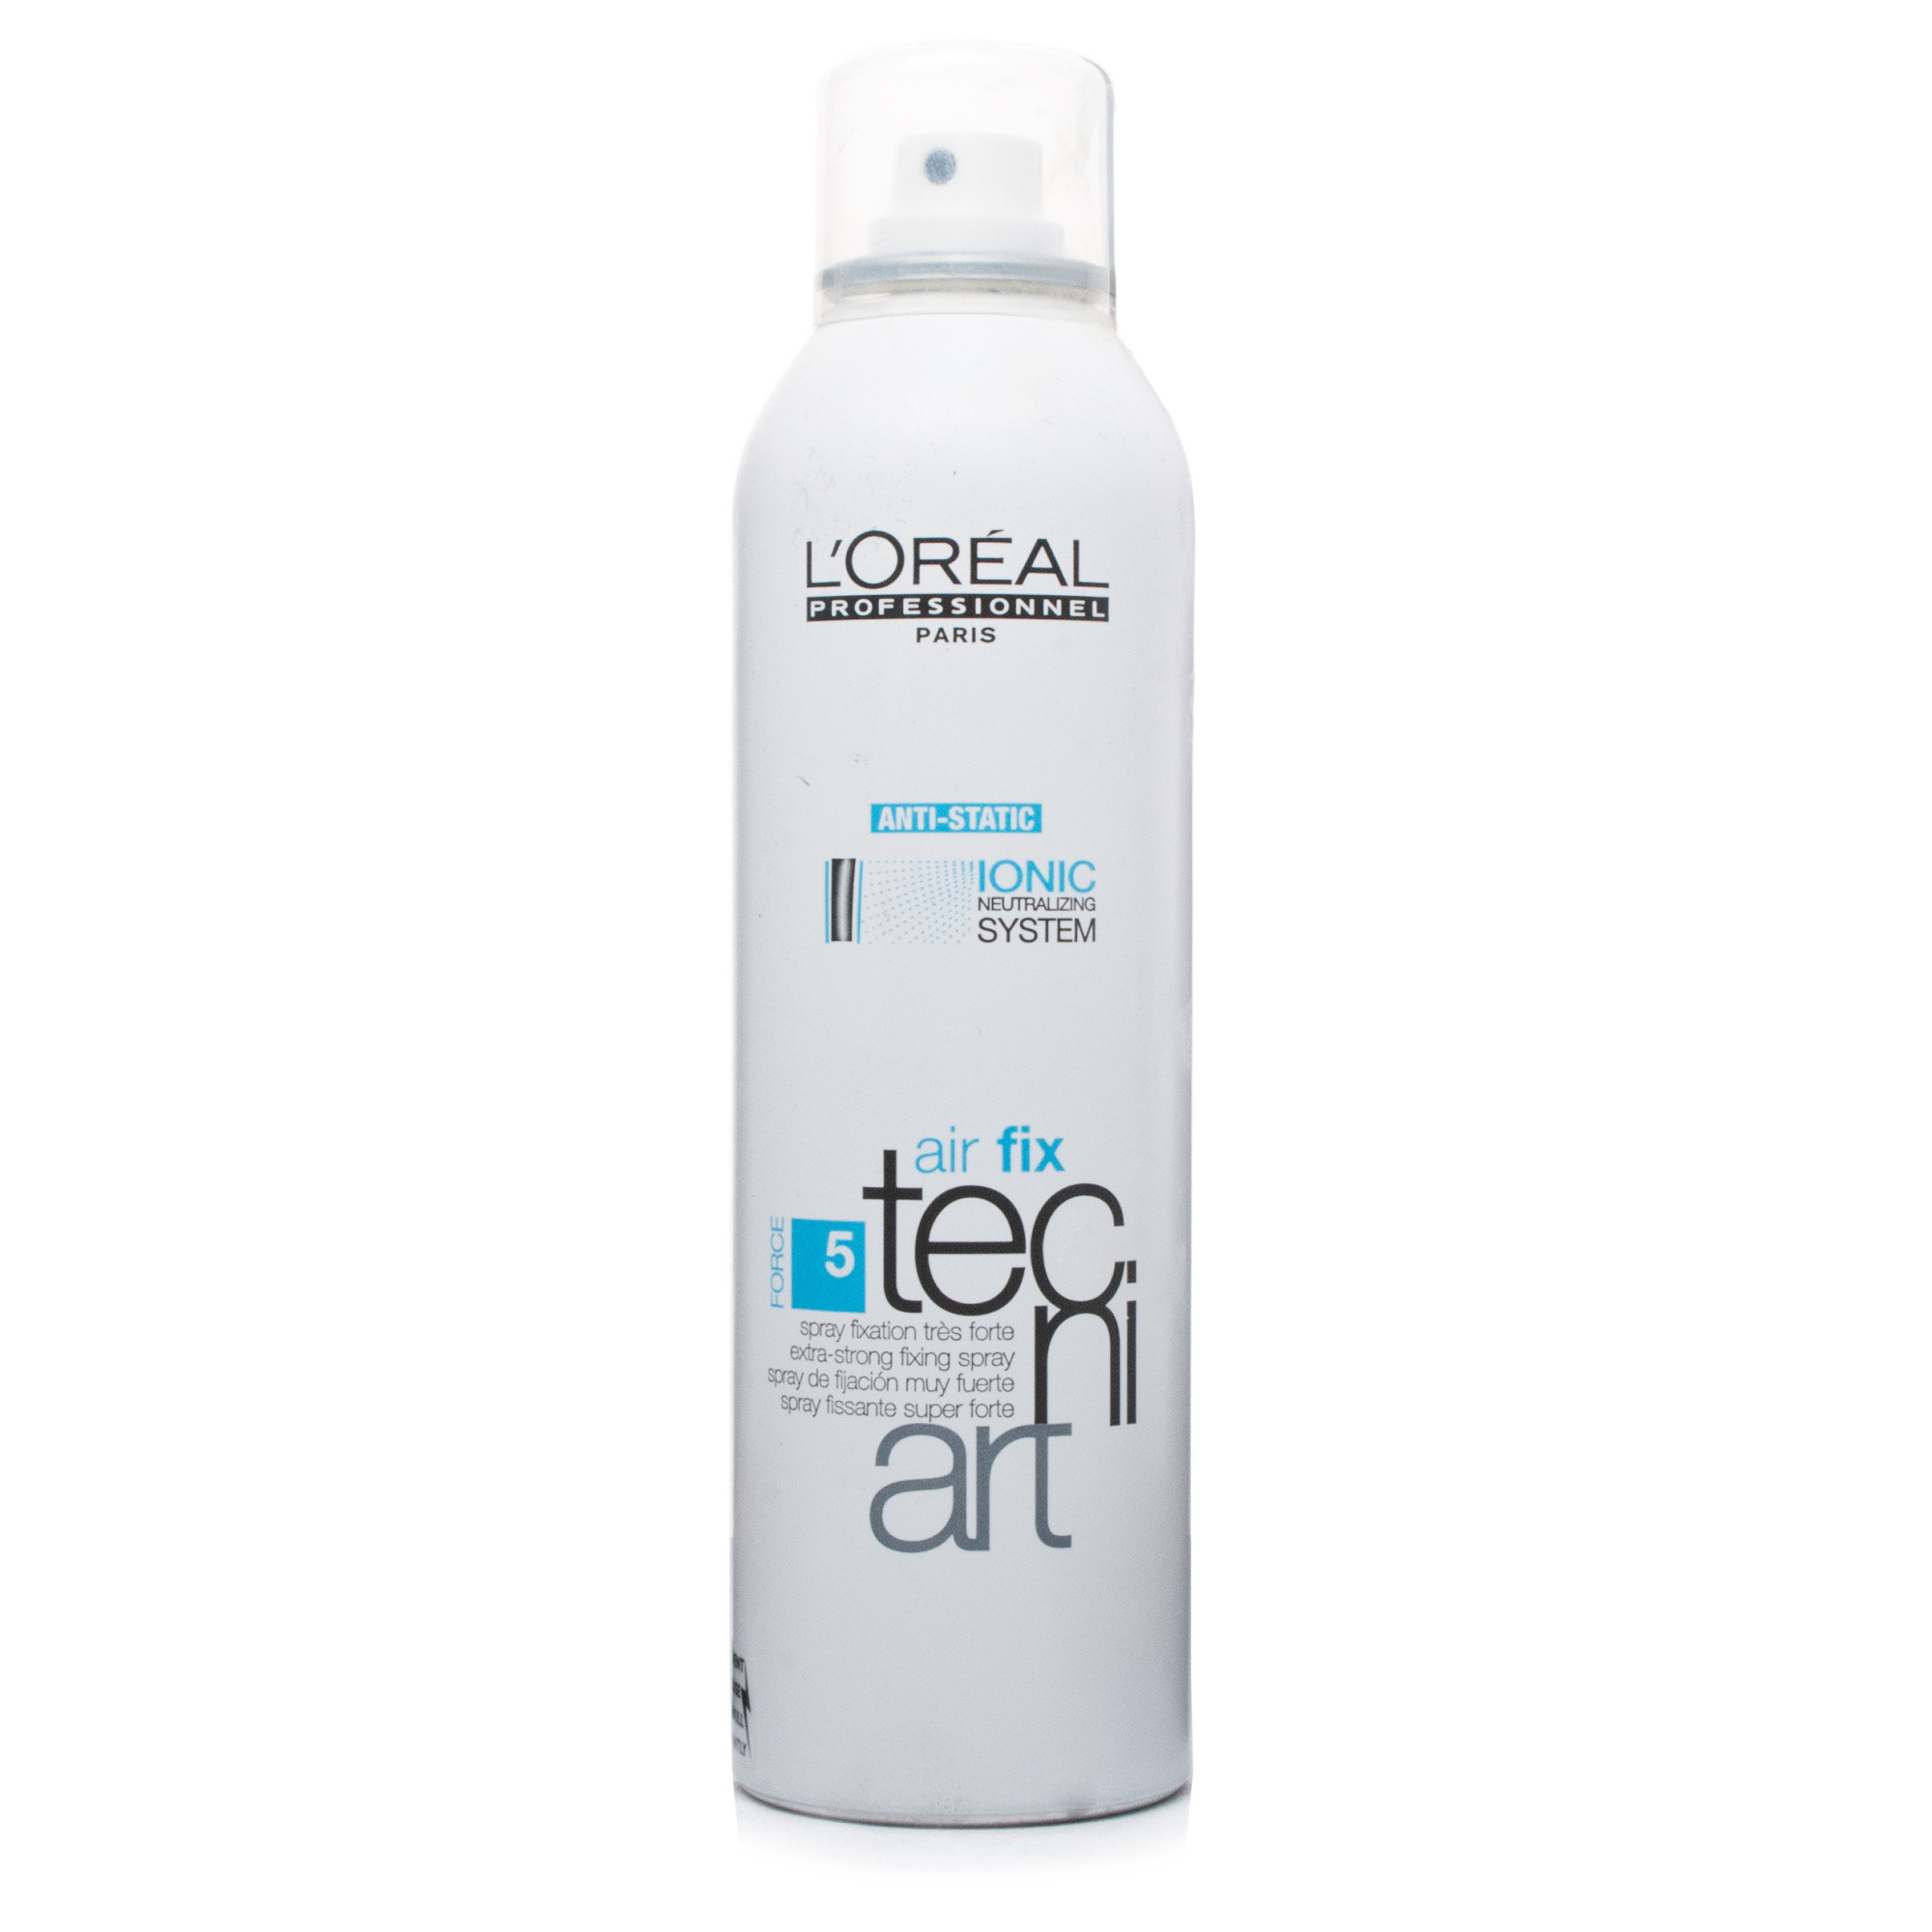 L'Oreal Professionnel Tecni.Art Air Fix